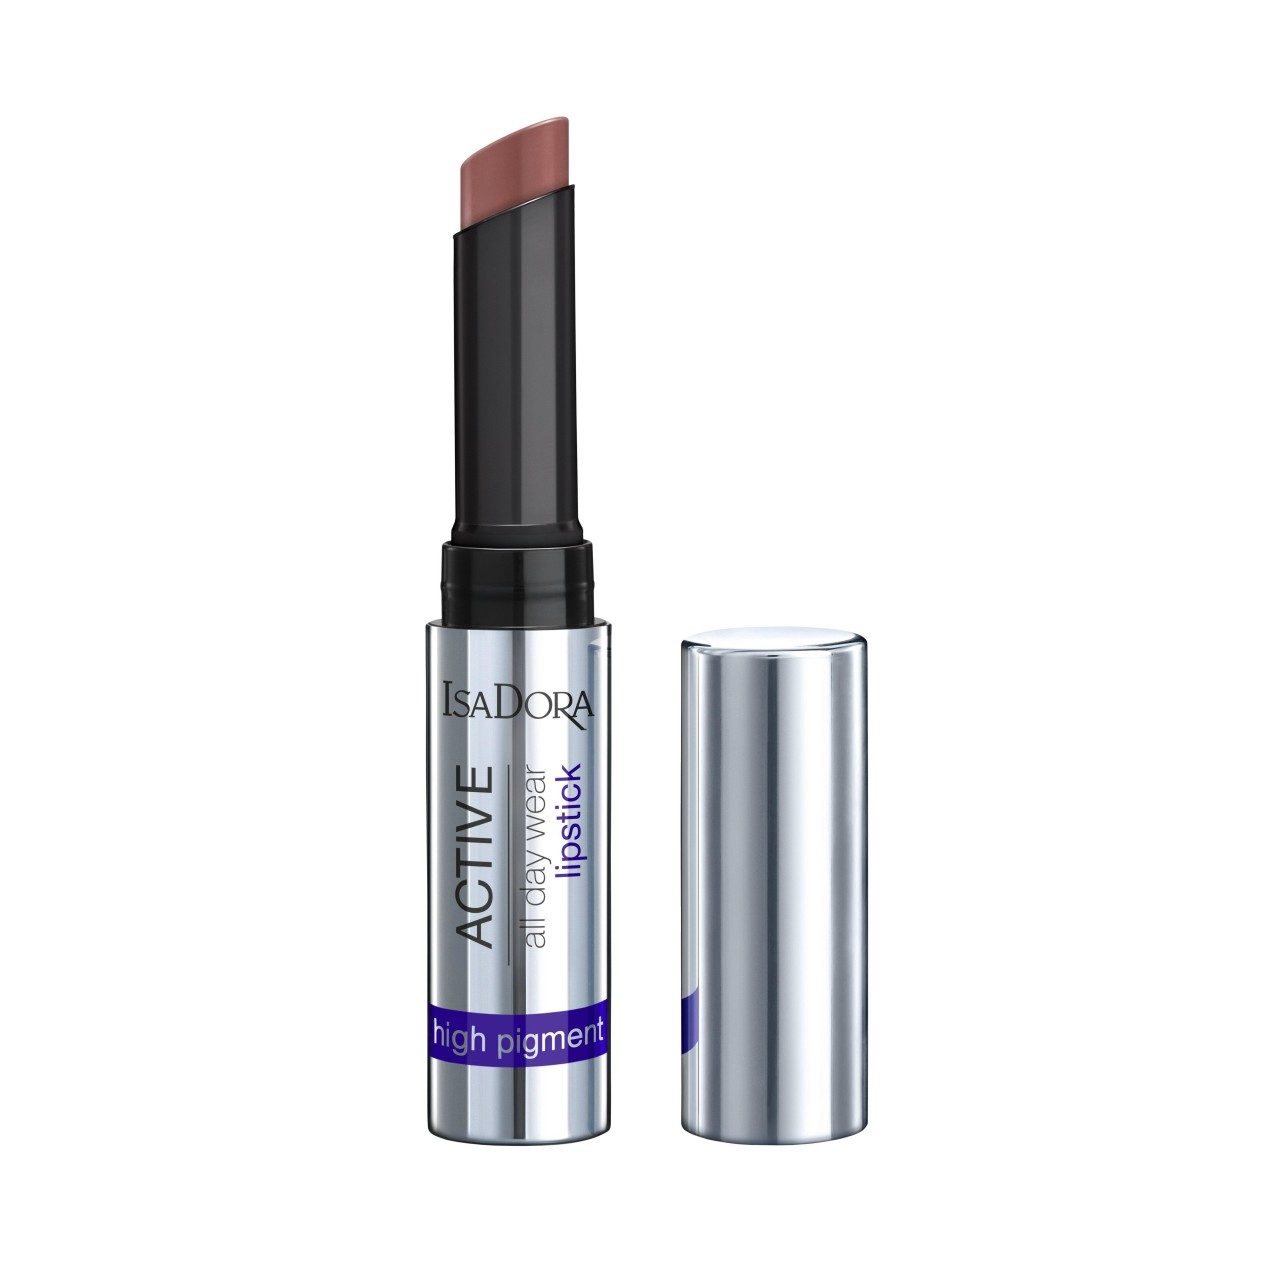 Isadora Active All Day Wear Lipstick